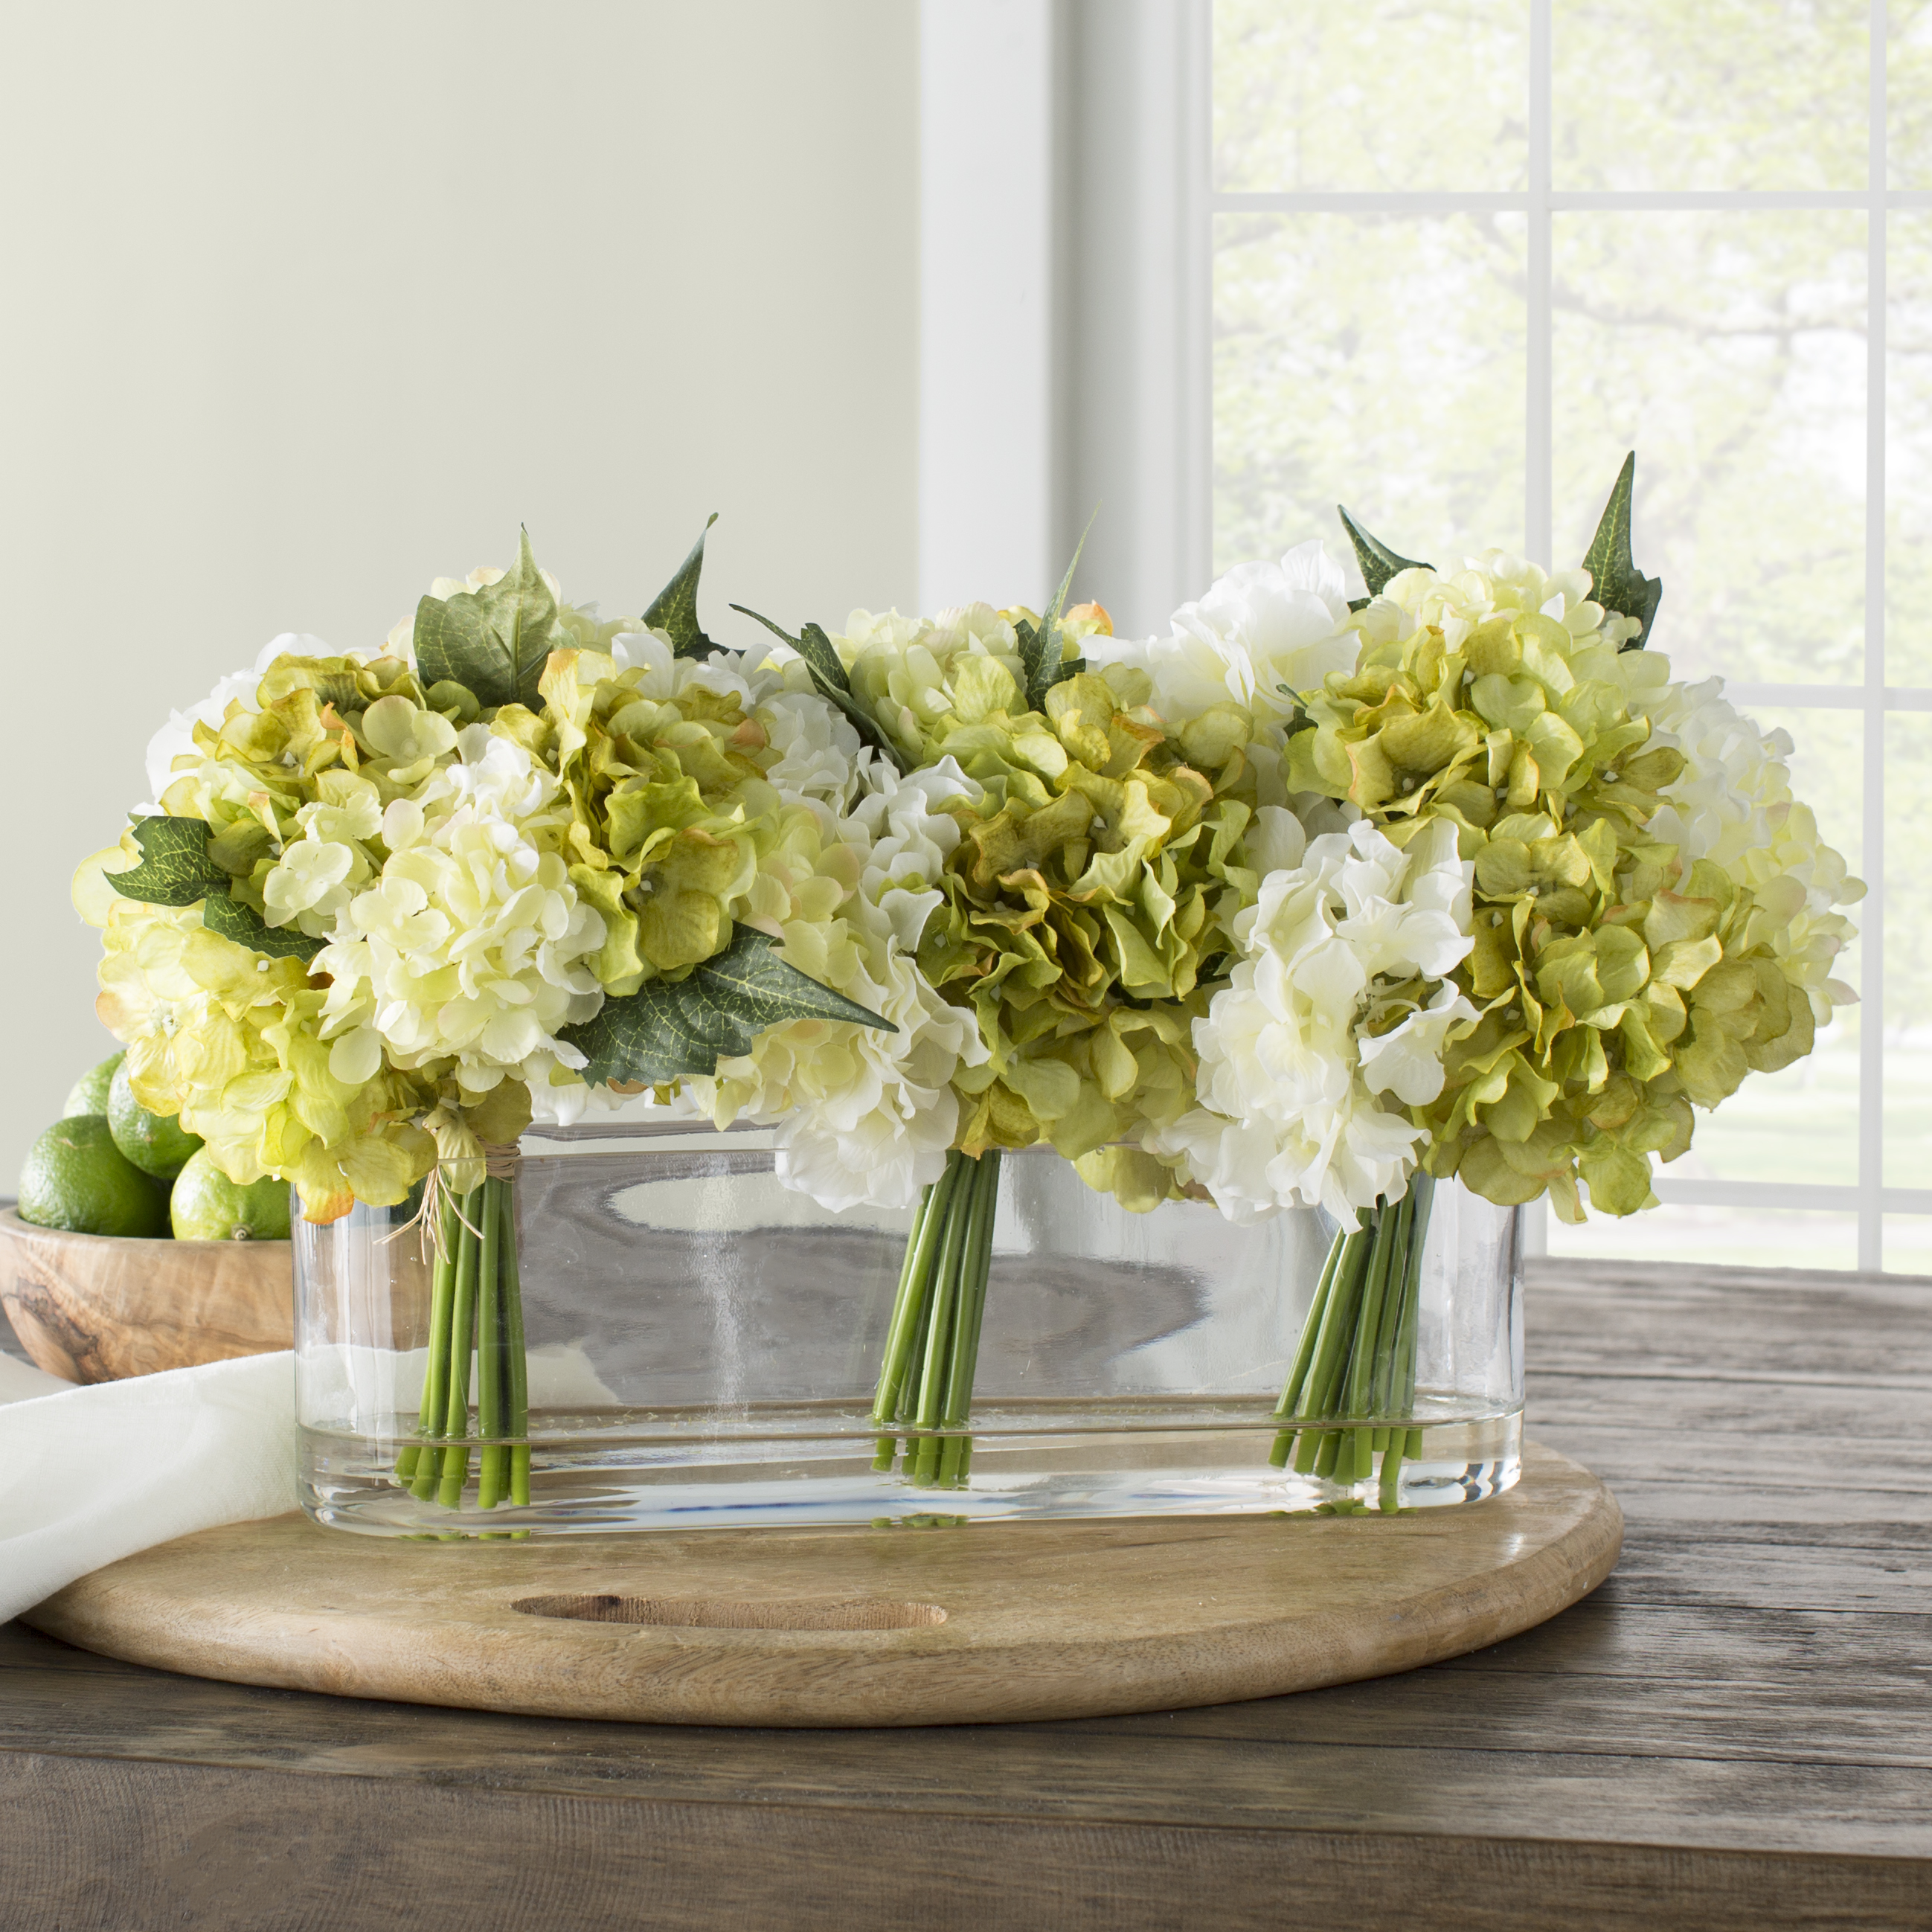 terrific kitchen table centerpiece | Farmhouse & Rustic Table Decor & Centerpieces | Birch Lane